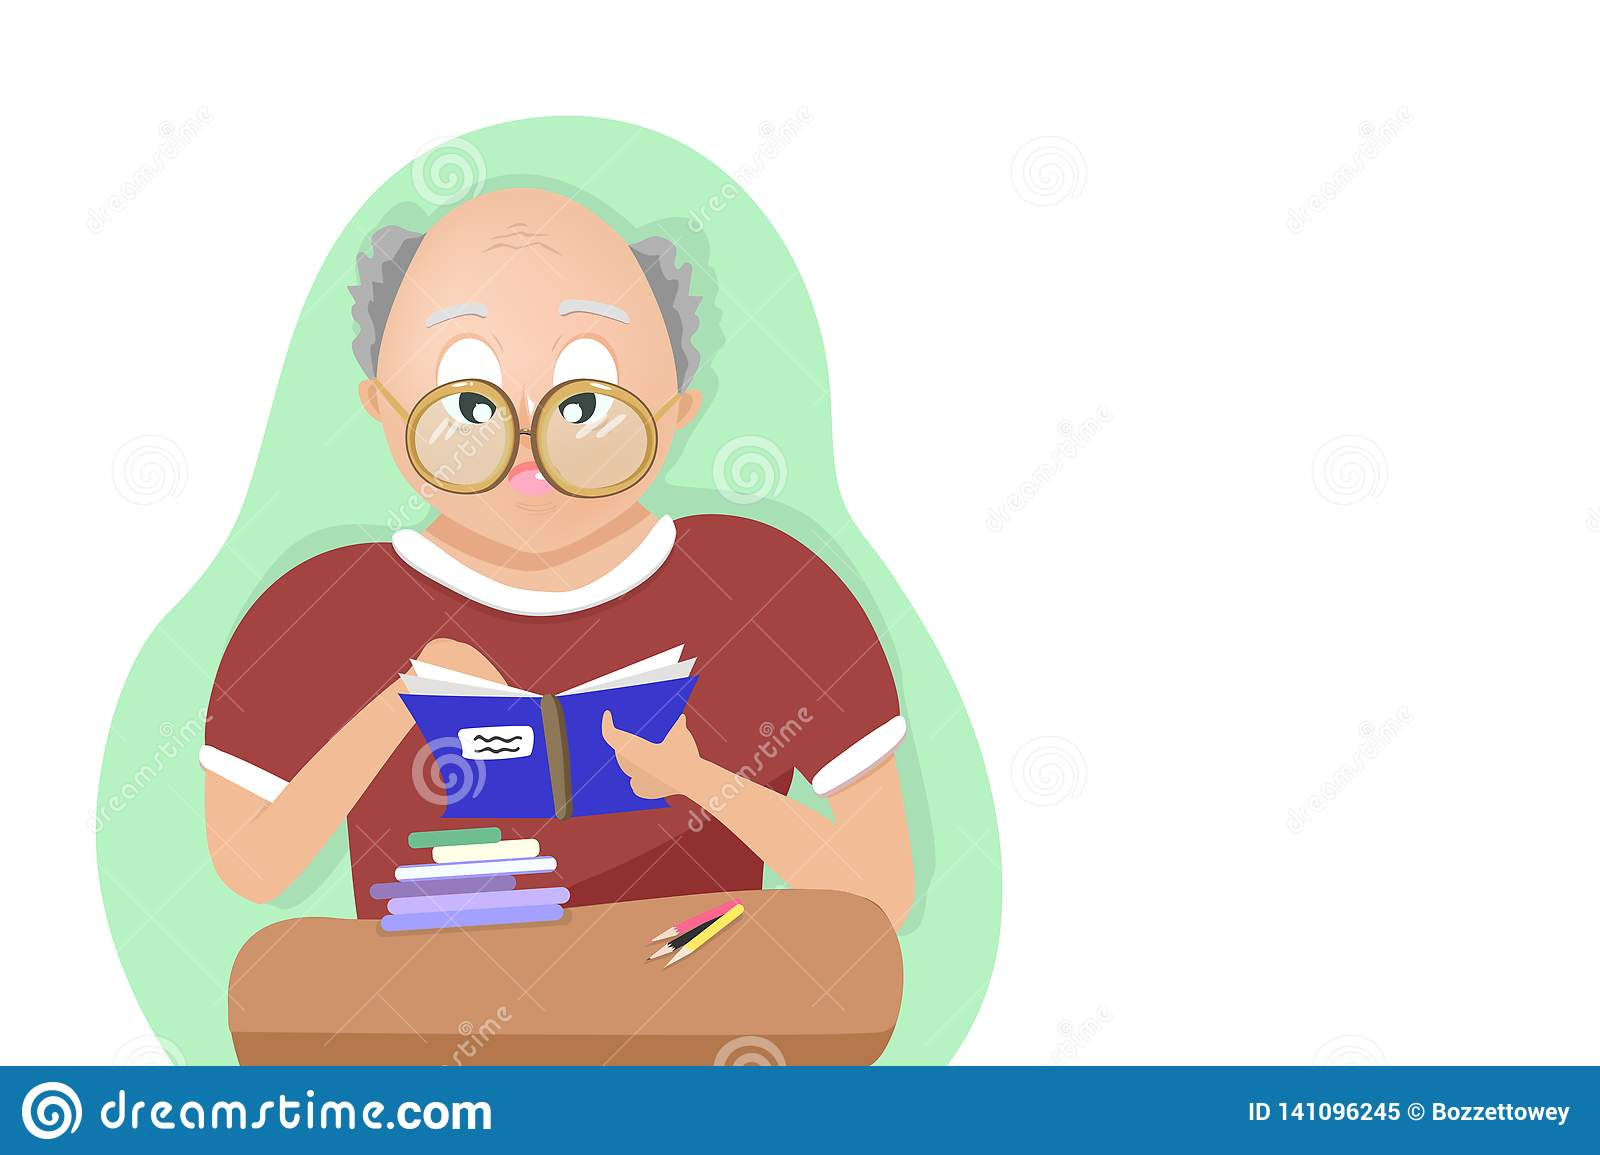 Old man reading a book, studying and learning concept, people cartoon character vector illustration